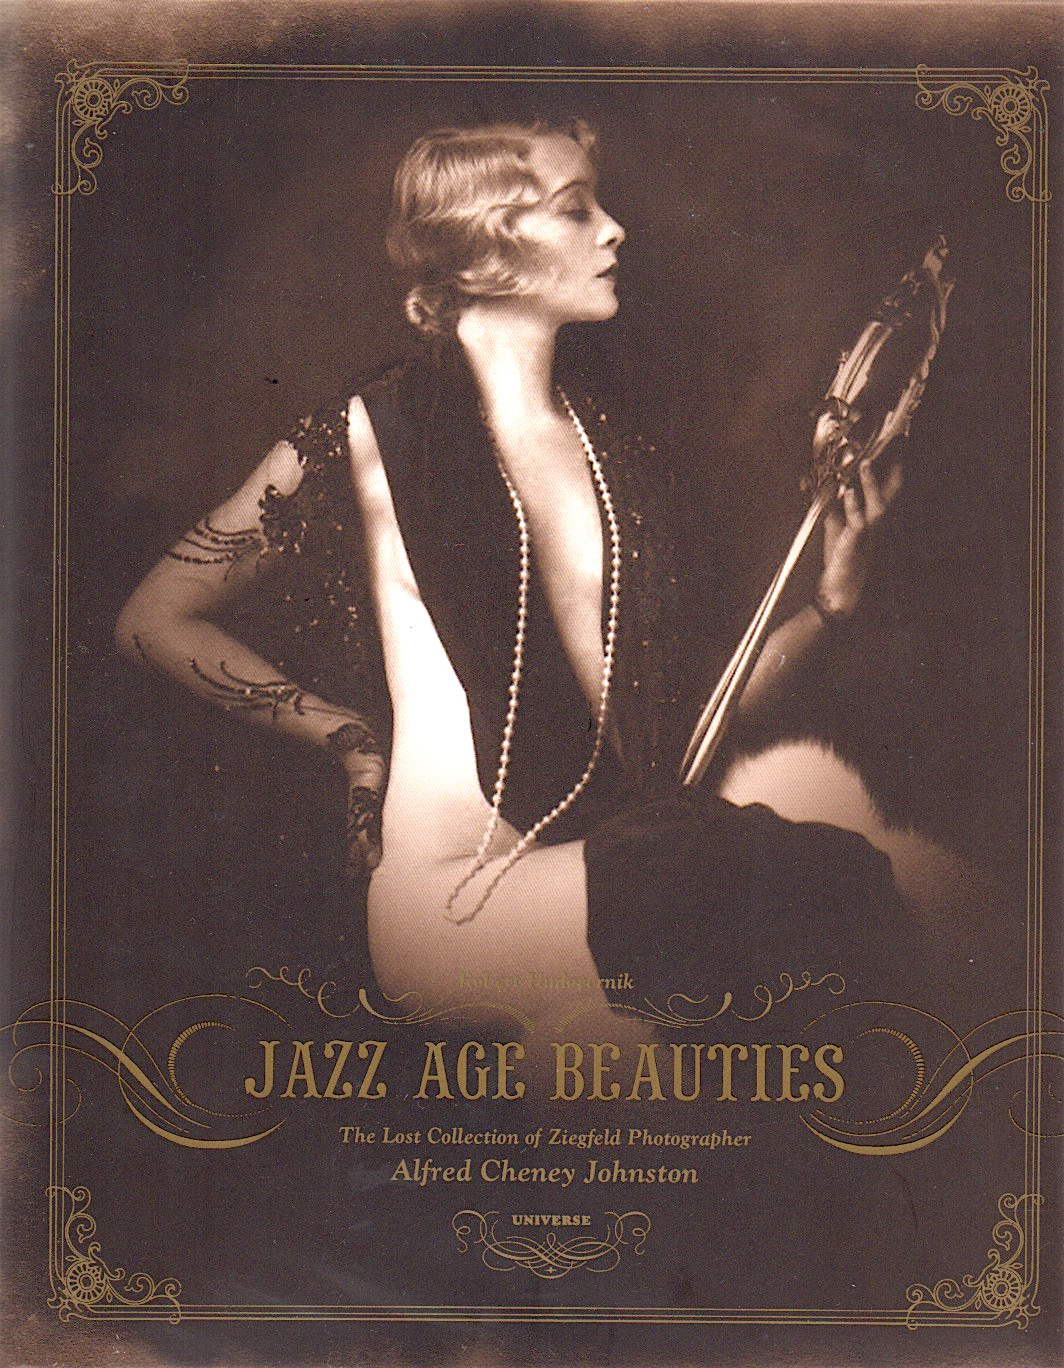 JAZZ AGE BEAUTIES: THE LOST COLLECTION OF ZIEGFELD PHOTOGRAPHER ALFRED CHENEY JOHNSTON. Alfred Cheney Johnston, Robert Hudovernik.